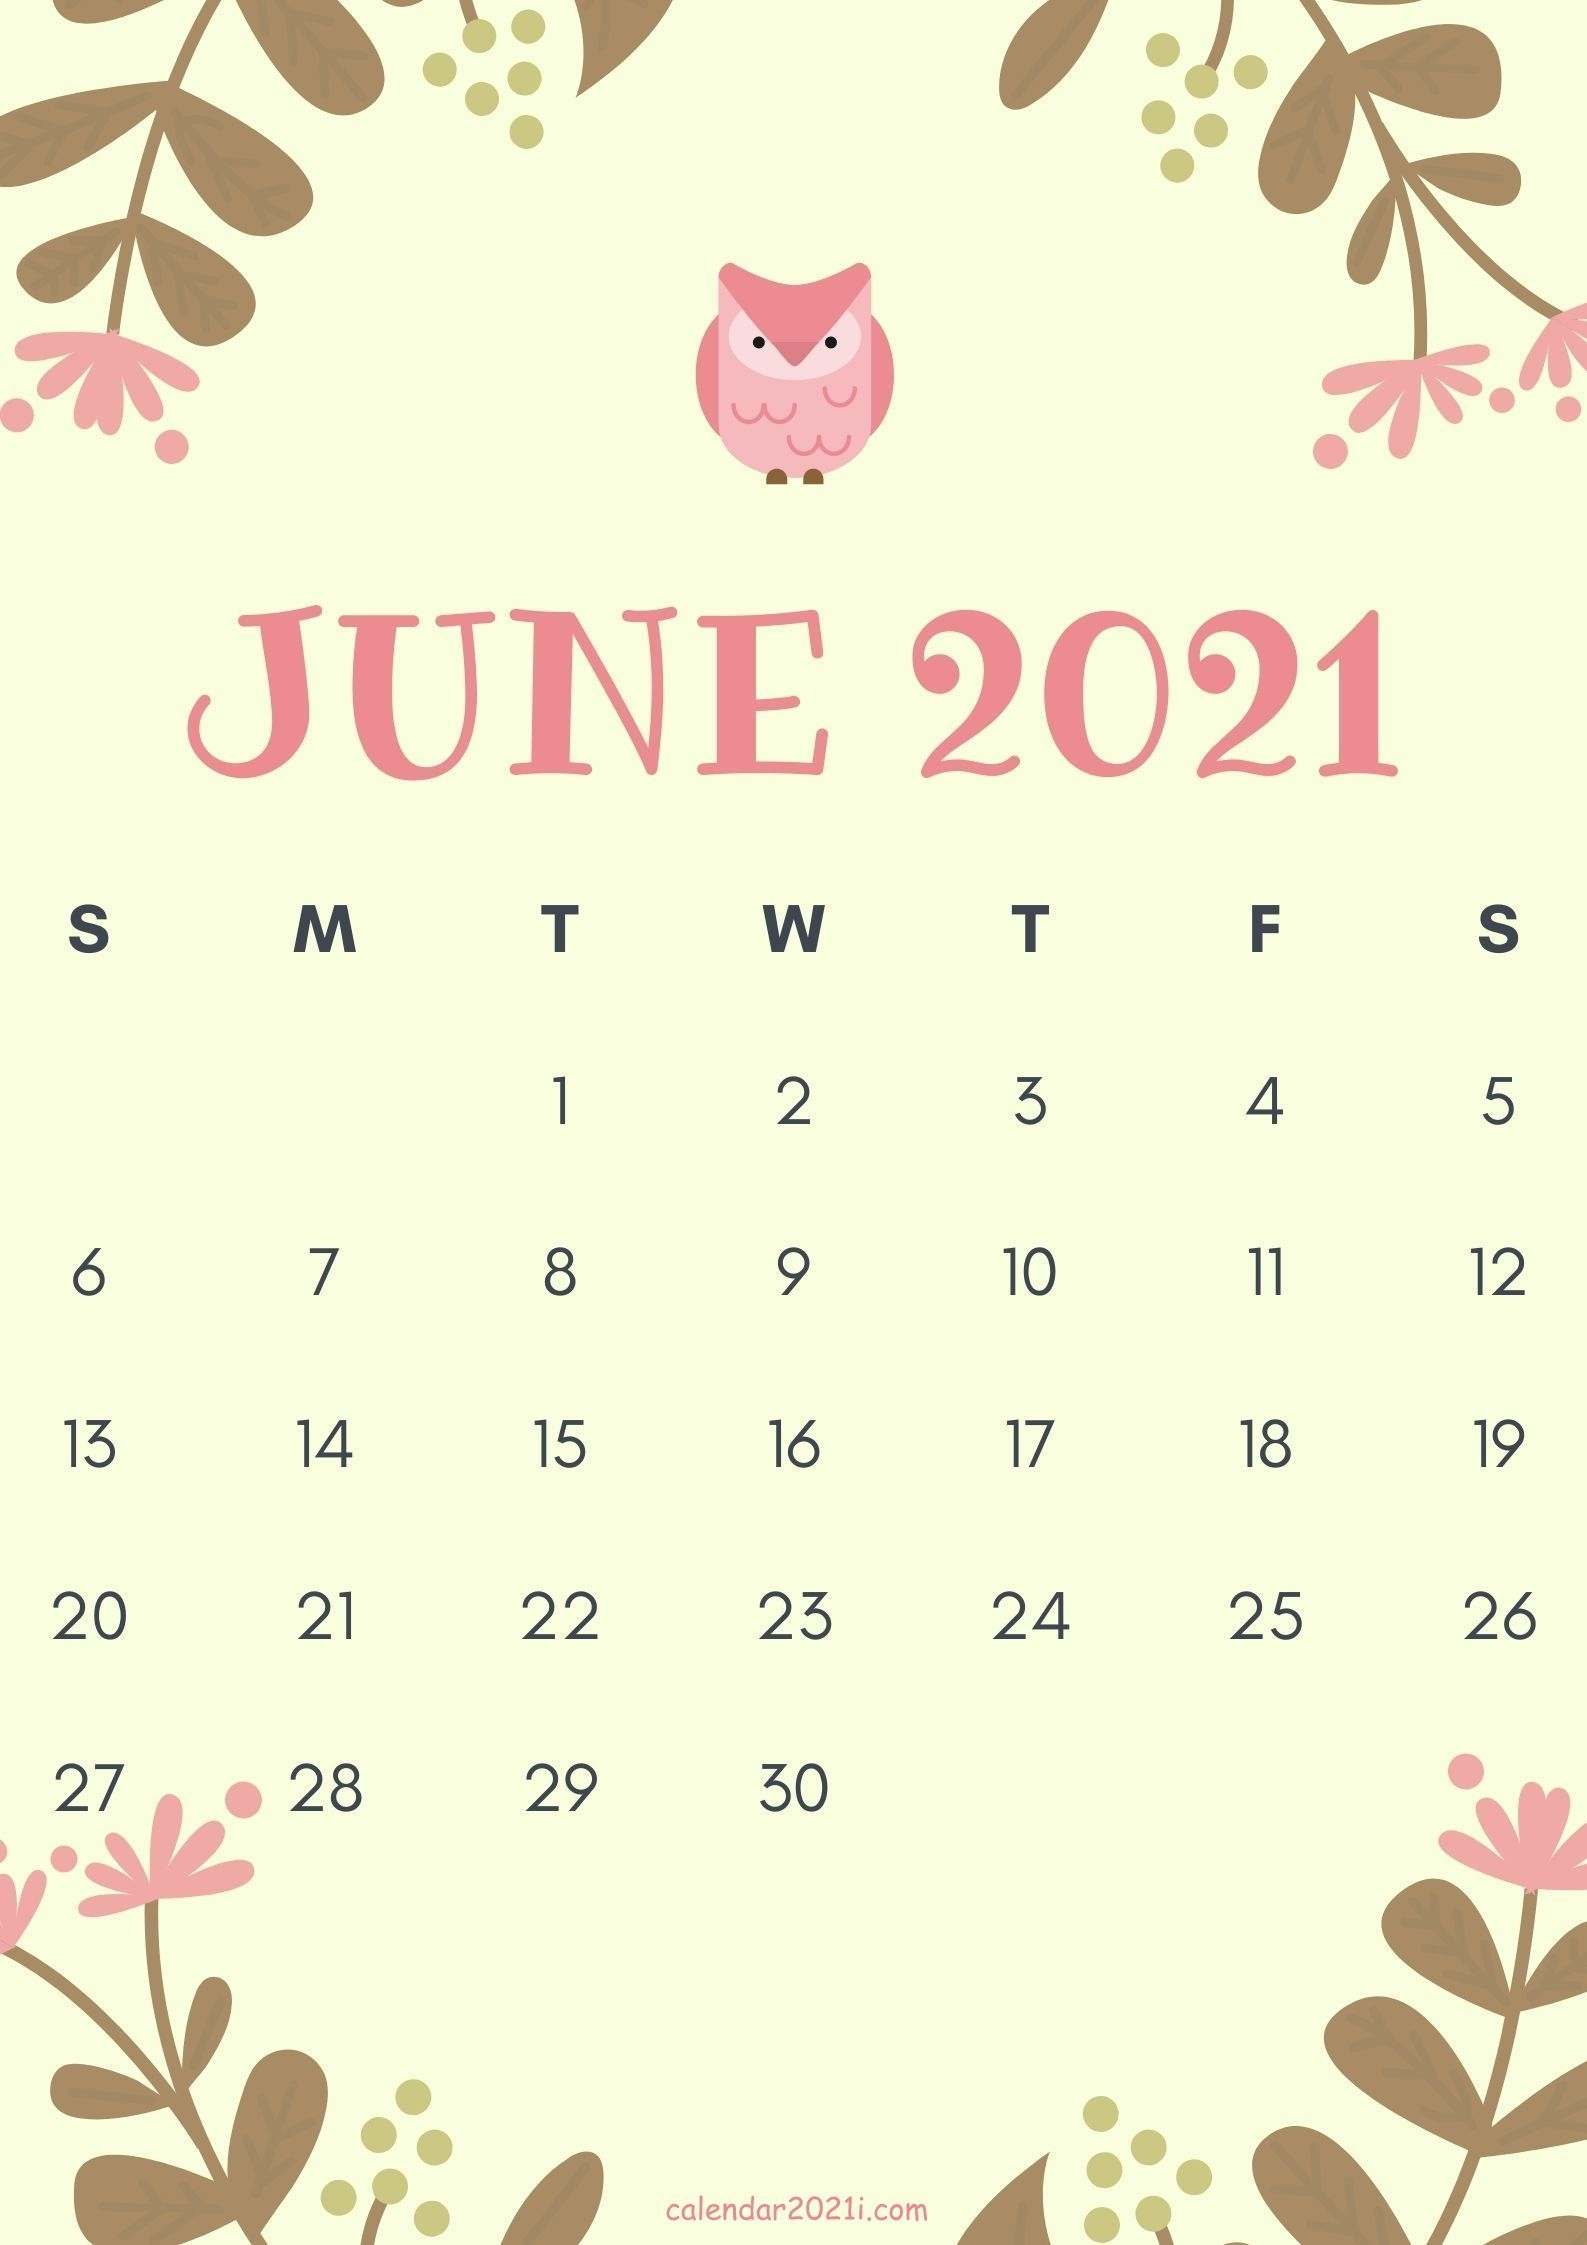 Cute June 2021 Calendar Design Theme Layout Free Download In